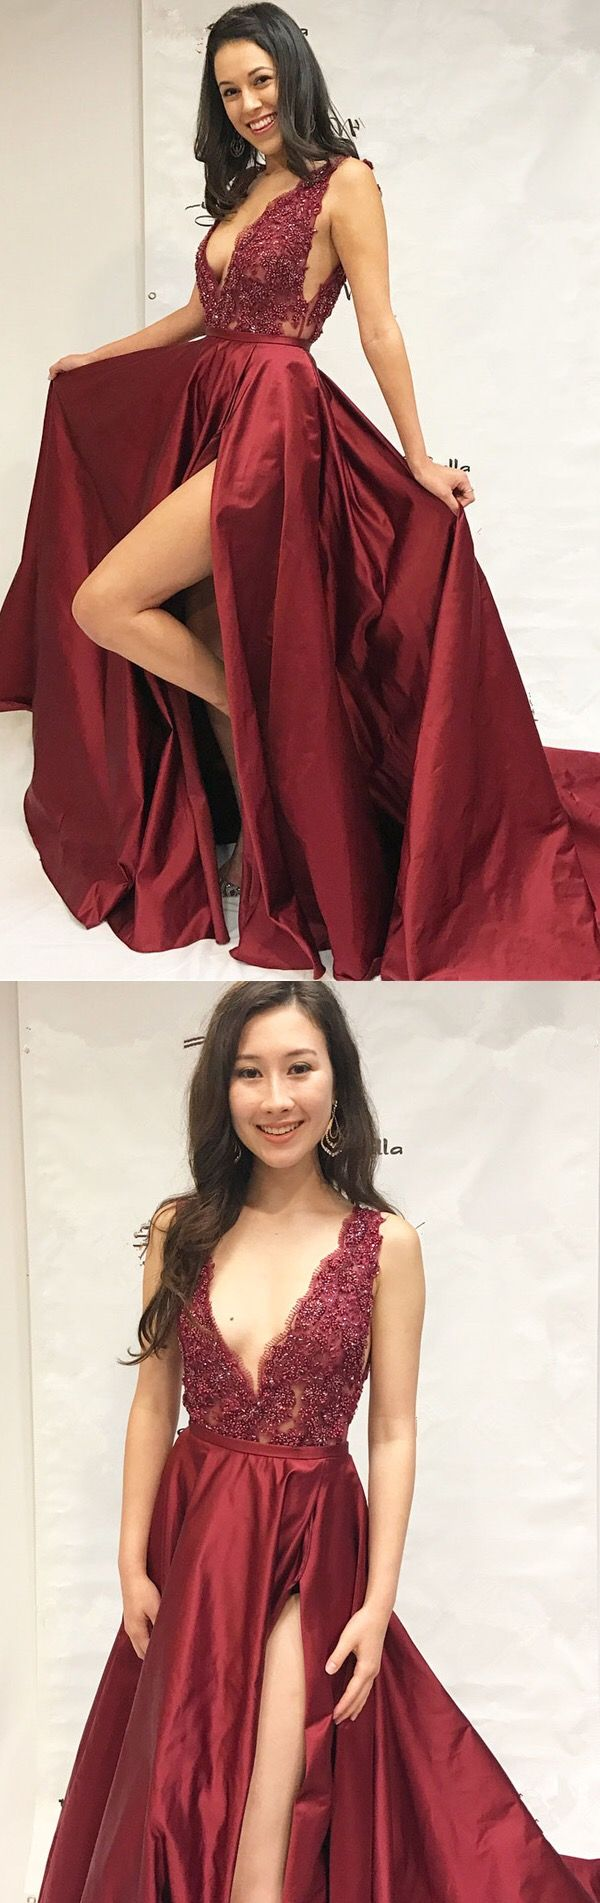 modest deep v neck burgundy prom dresses, unique satin long party dresses with split, elegant plunging evening gowns with beading